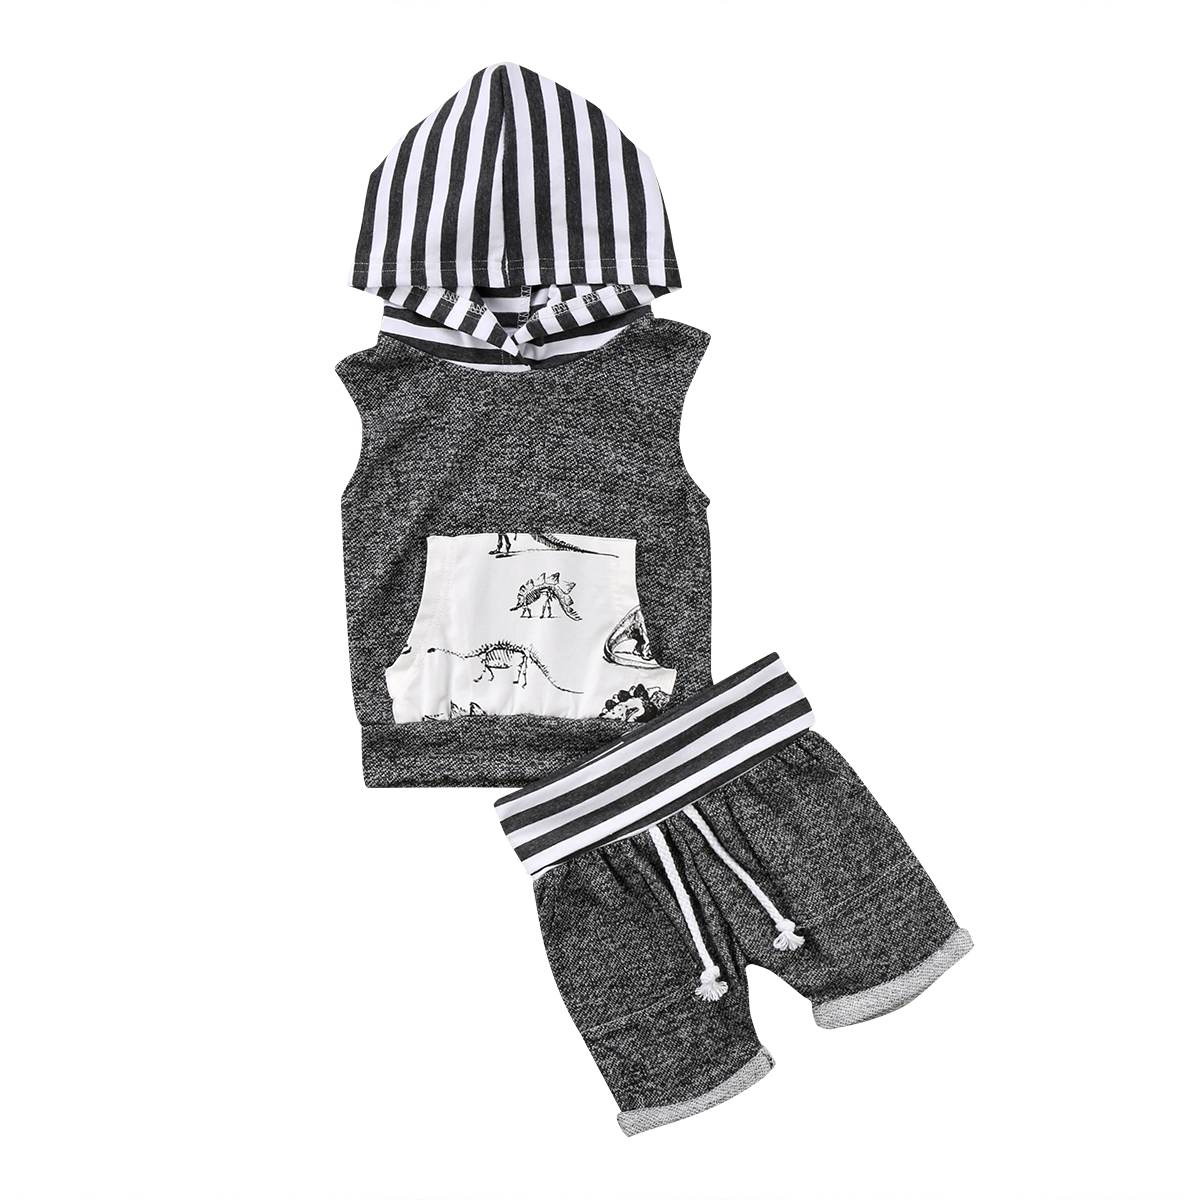 2019 New Casual Toddler Kids Baby Boy Sleeveless Striped Hooded Tank Tops+Shorts Pants 2pcs Kid Outfit Dinosaur Clothes Set